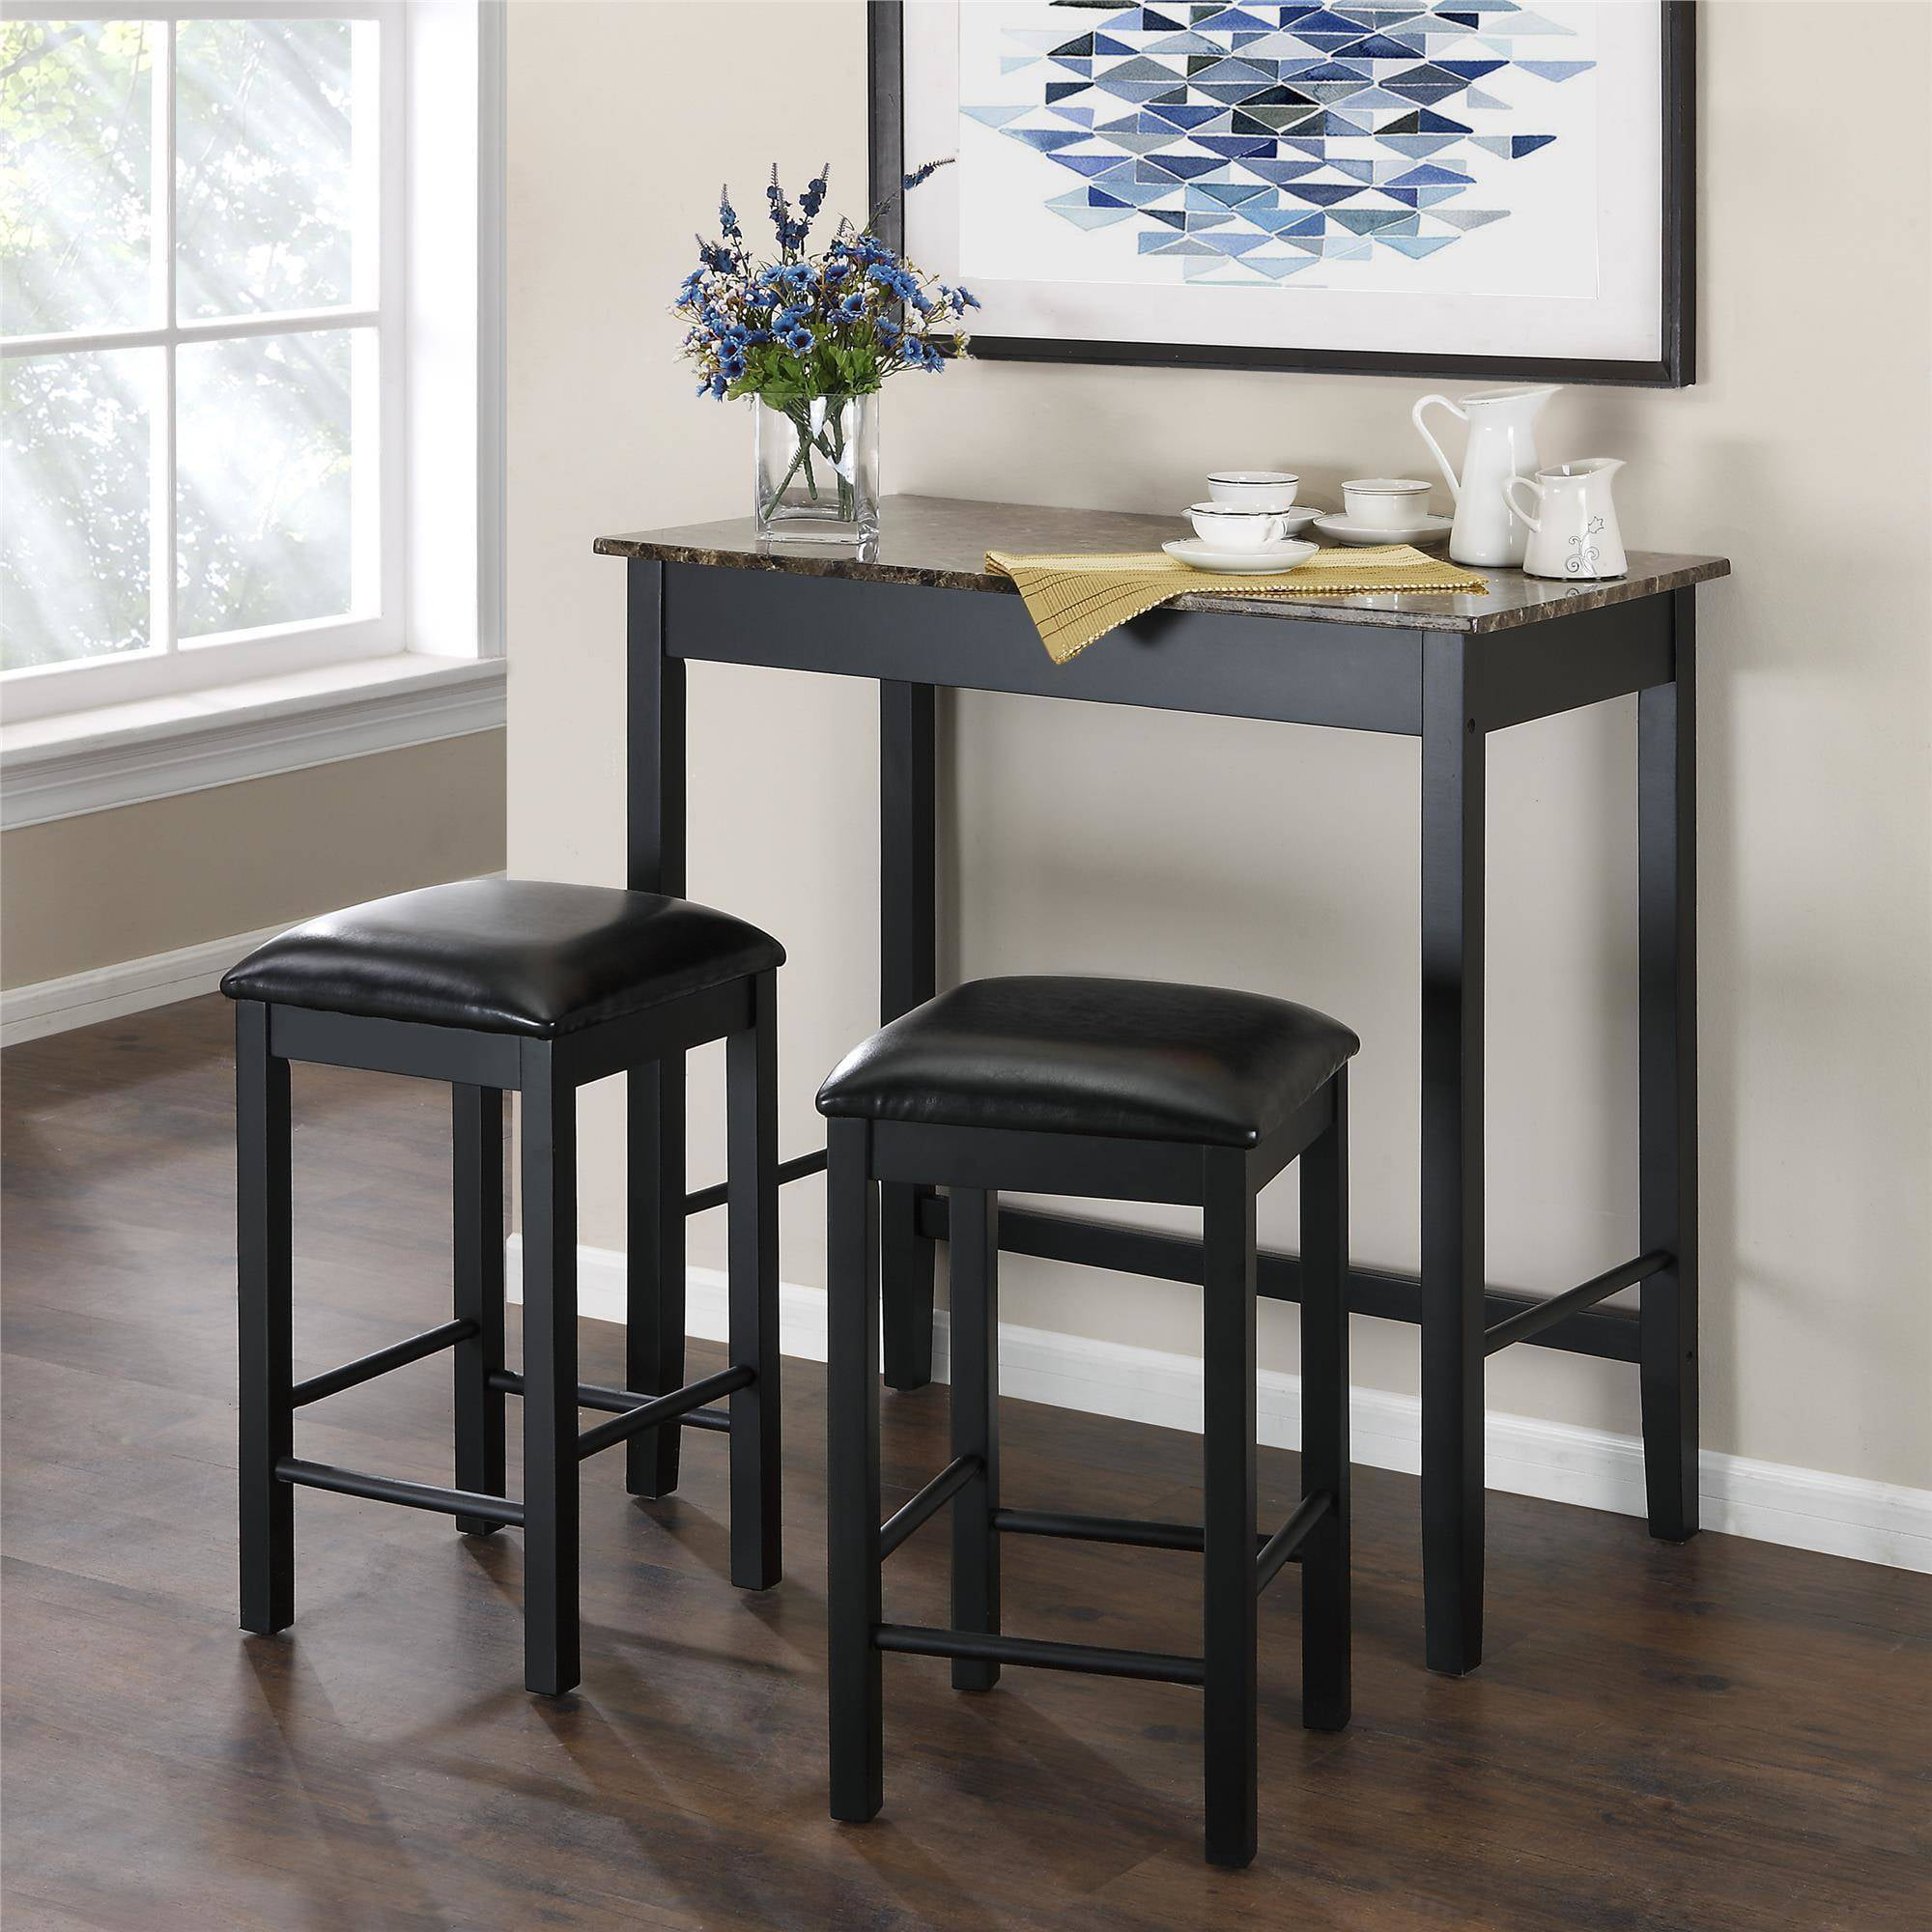 Dorel Living Devyn Piece Faux Marble Pub Dining Set Black - Marble counter high dining table